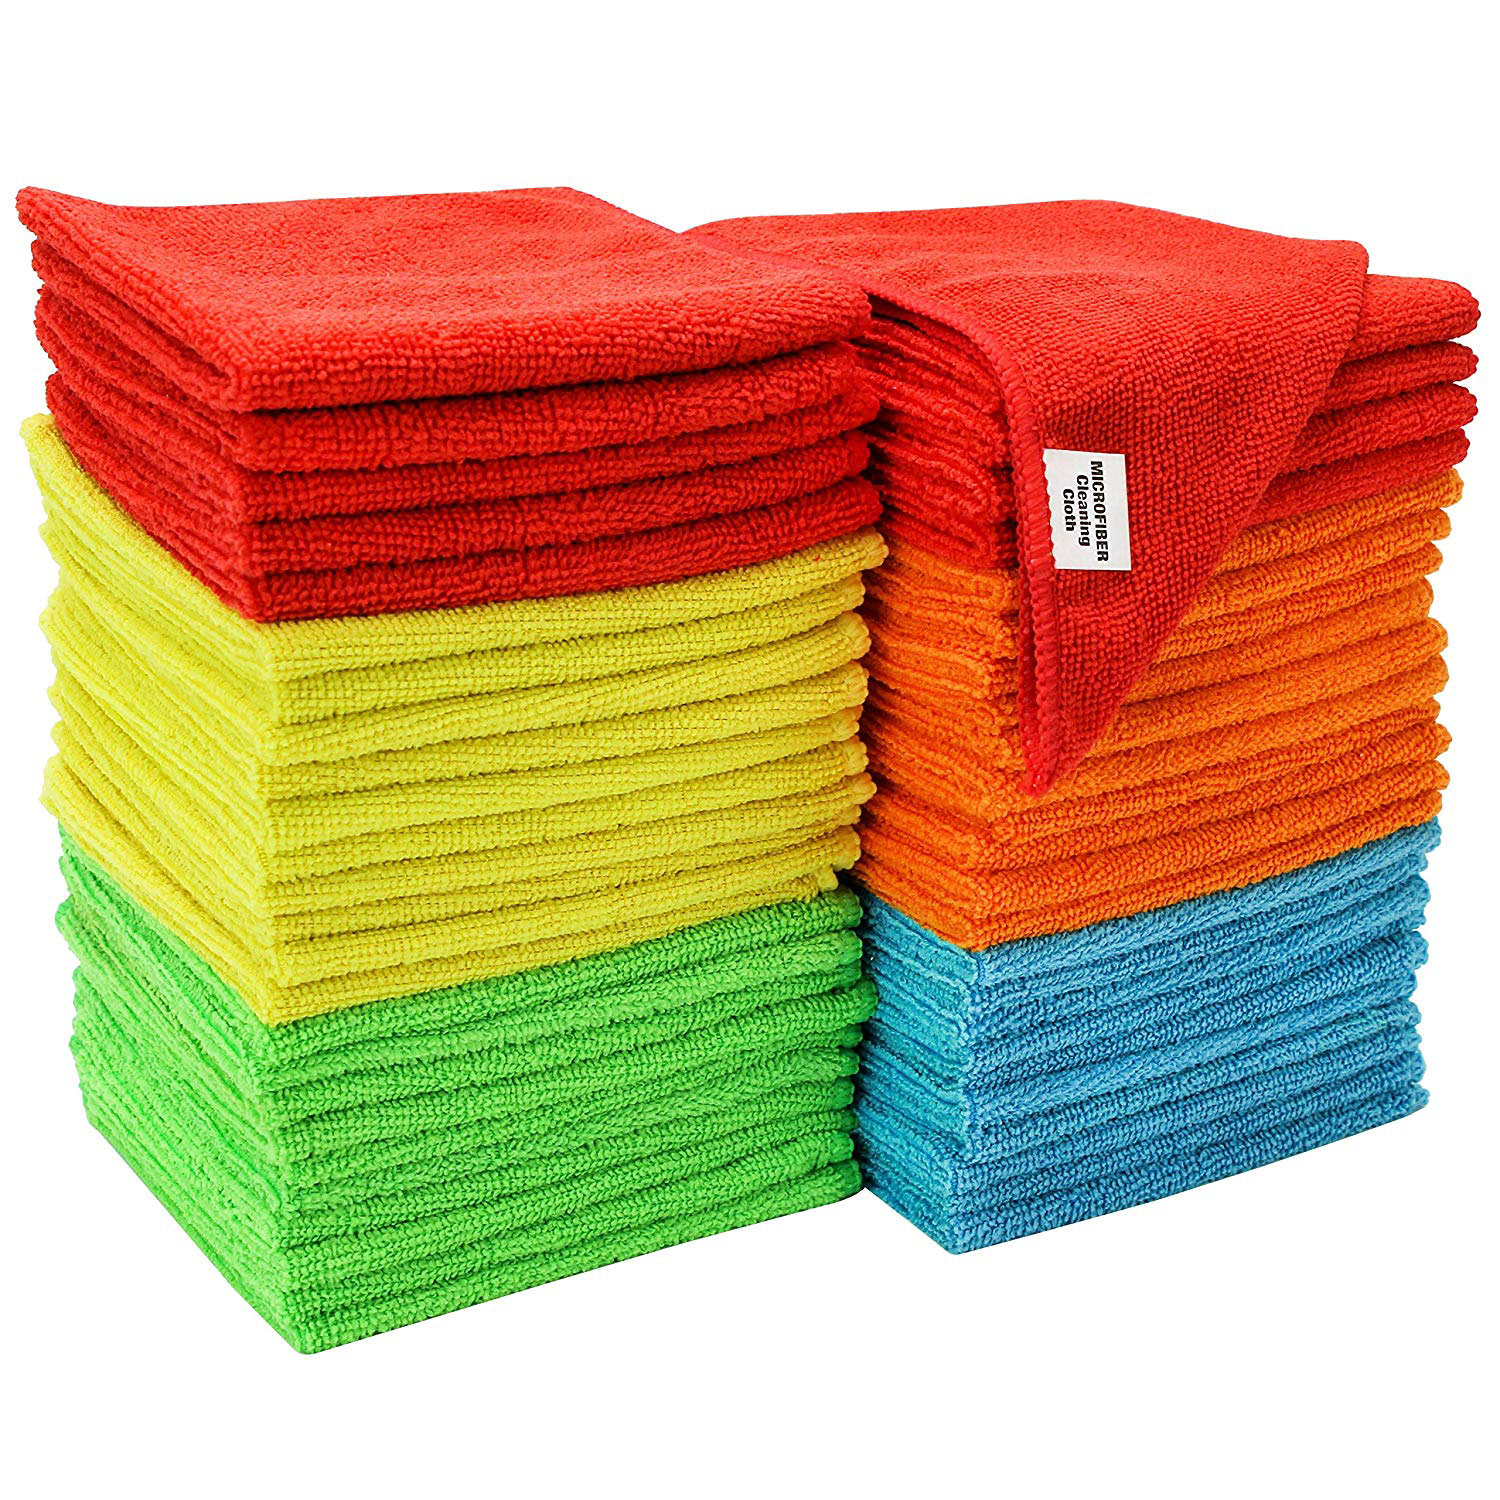 S&T INC. 968601 Assorted 50 Pack Microfiber Cleaning Cloths